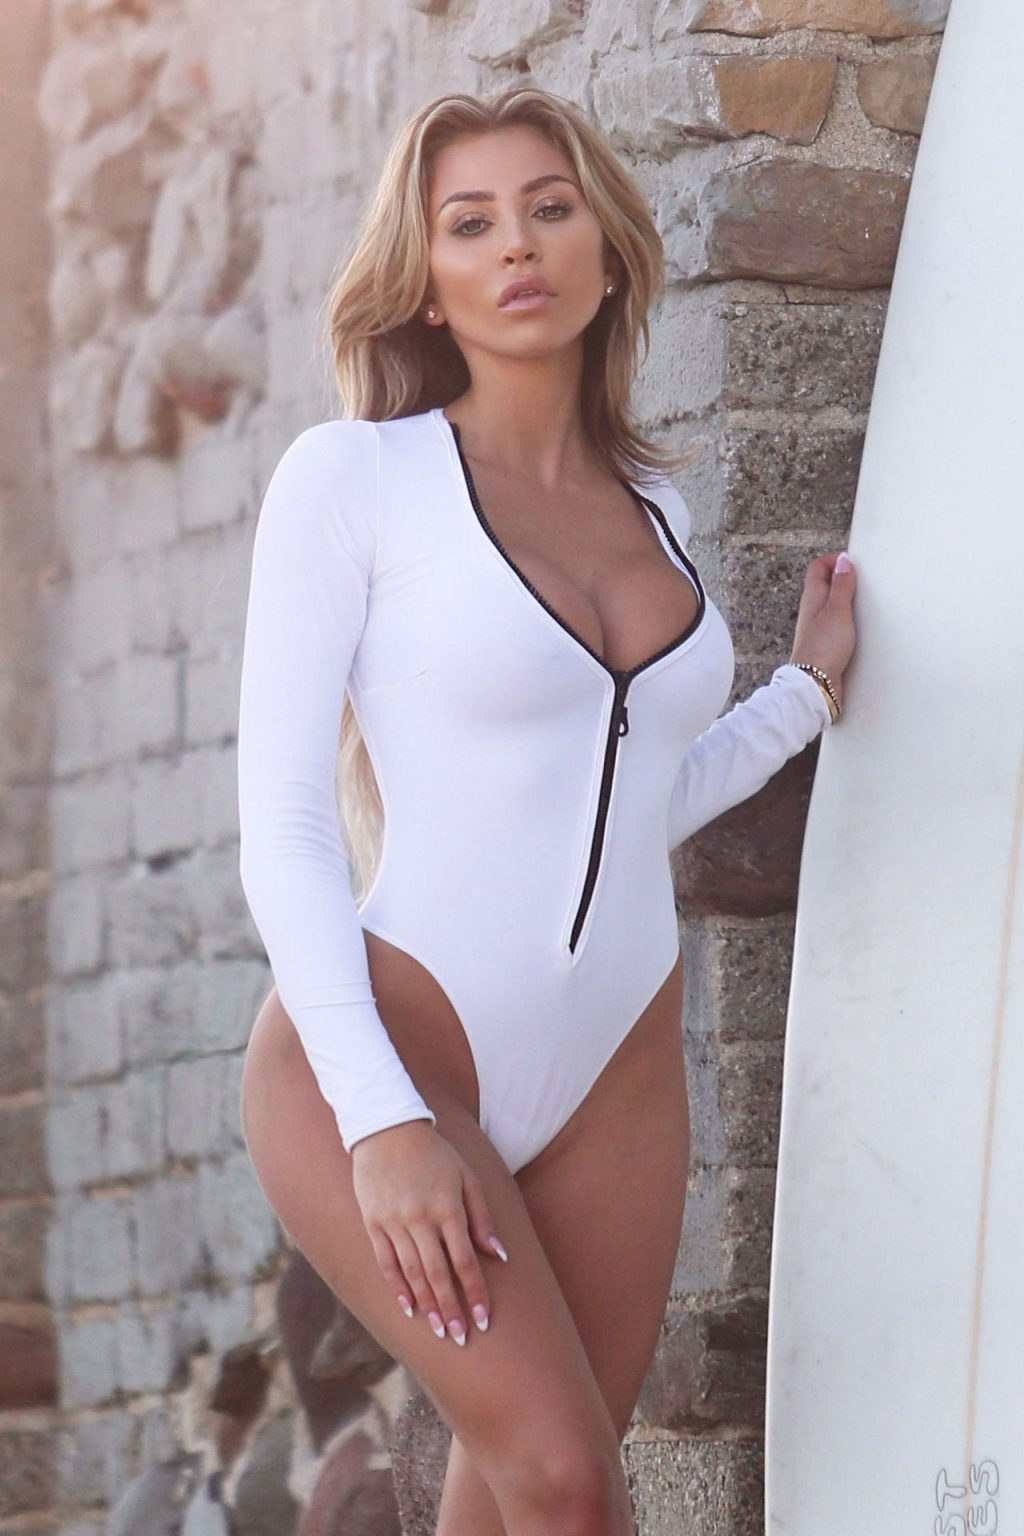 Khloe Terae Poses in a Malibu Beach Photoshoot for 138 Water (54 Photos)